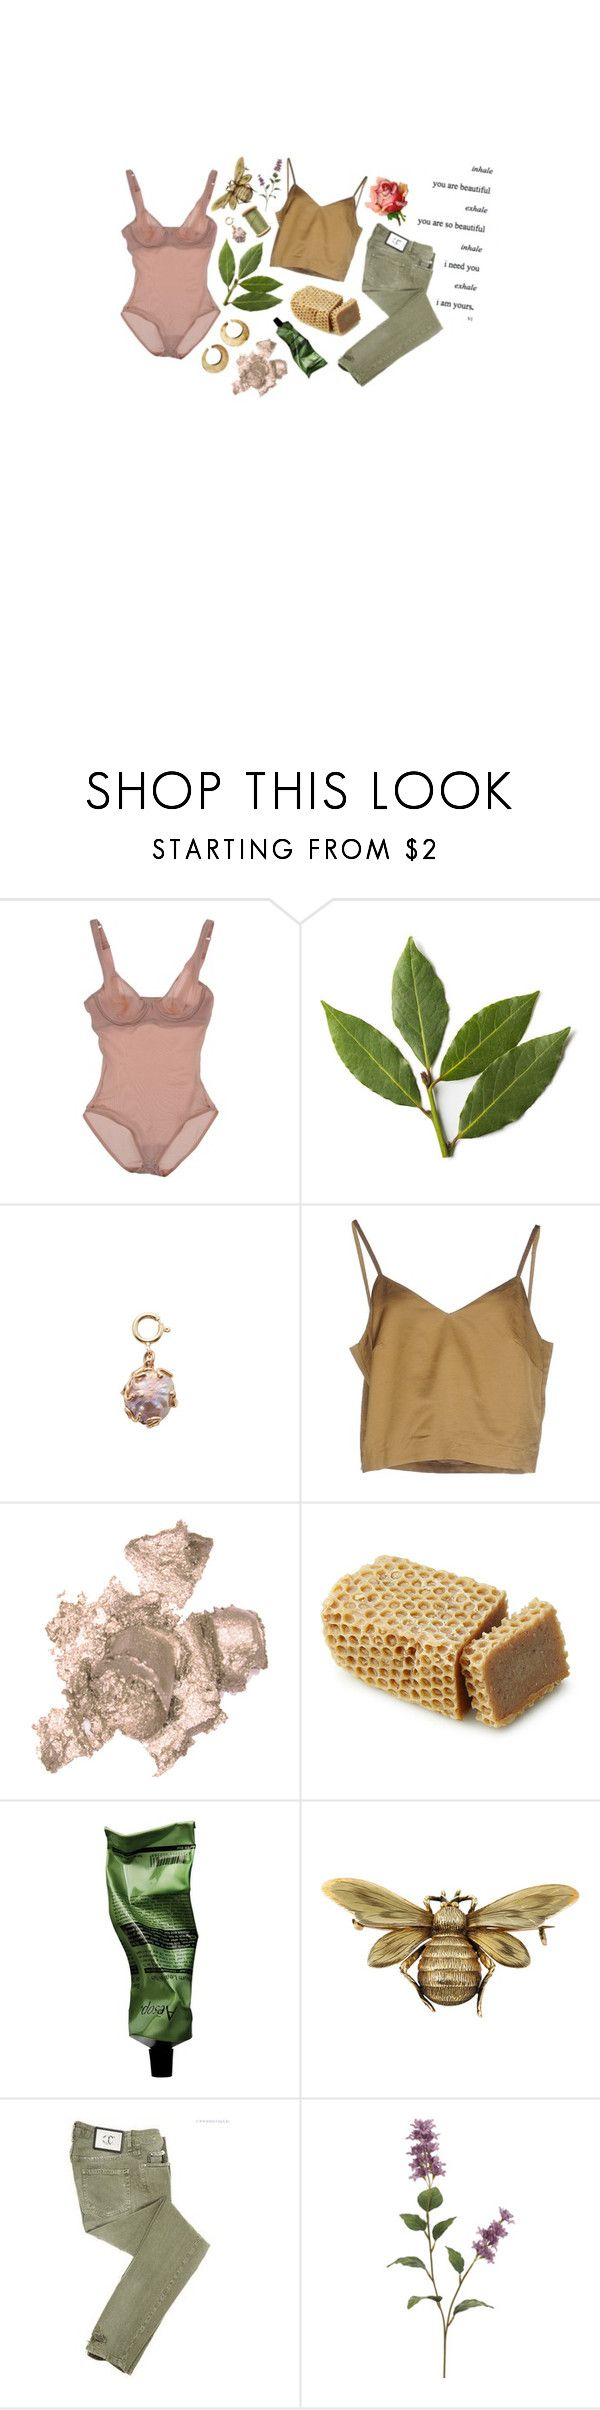 """""""i fall in love with imaginary people"""" by cliffordcoffee ❤ liked on Polyvore featuring Wolford, Sharon Khazzam, Erika Cavallini Semi-Couture, By Terry, Aesop and Just Cavalli"""